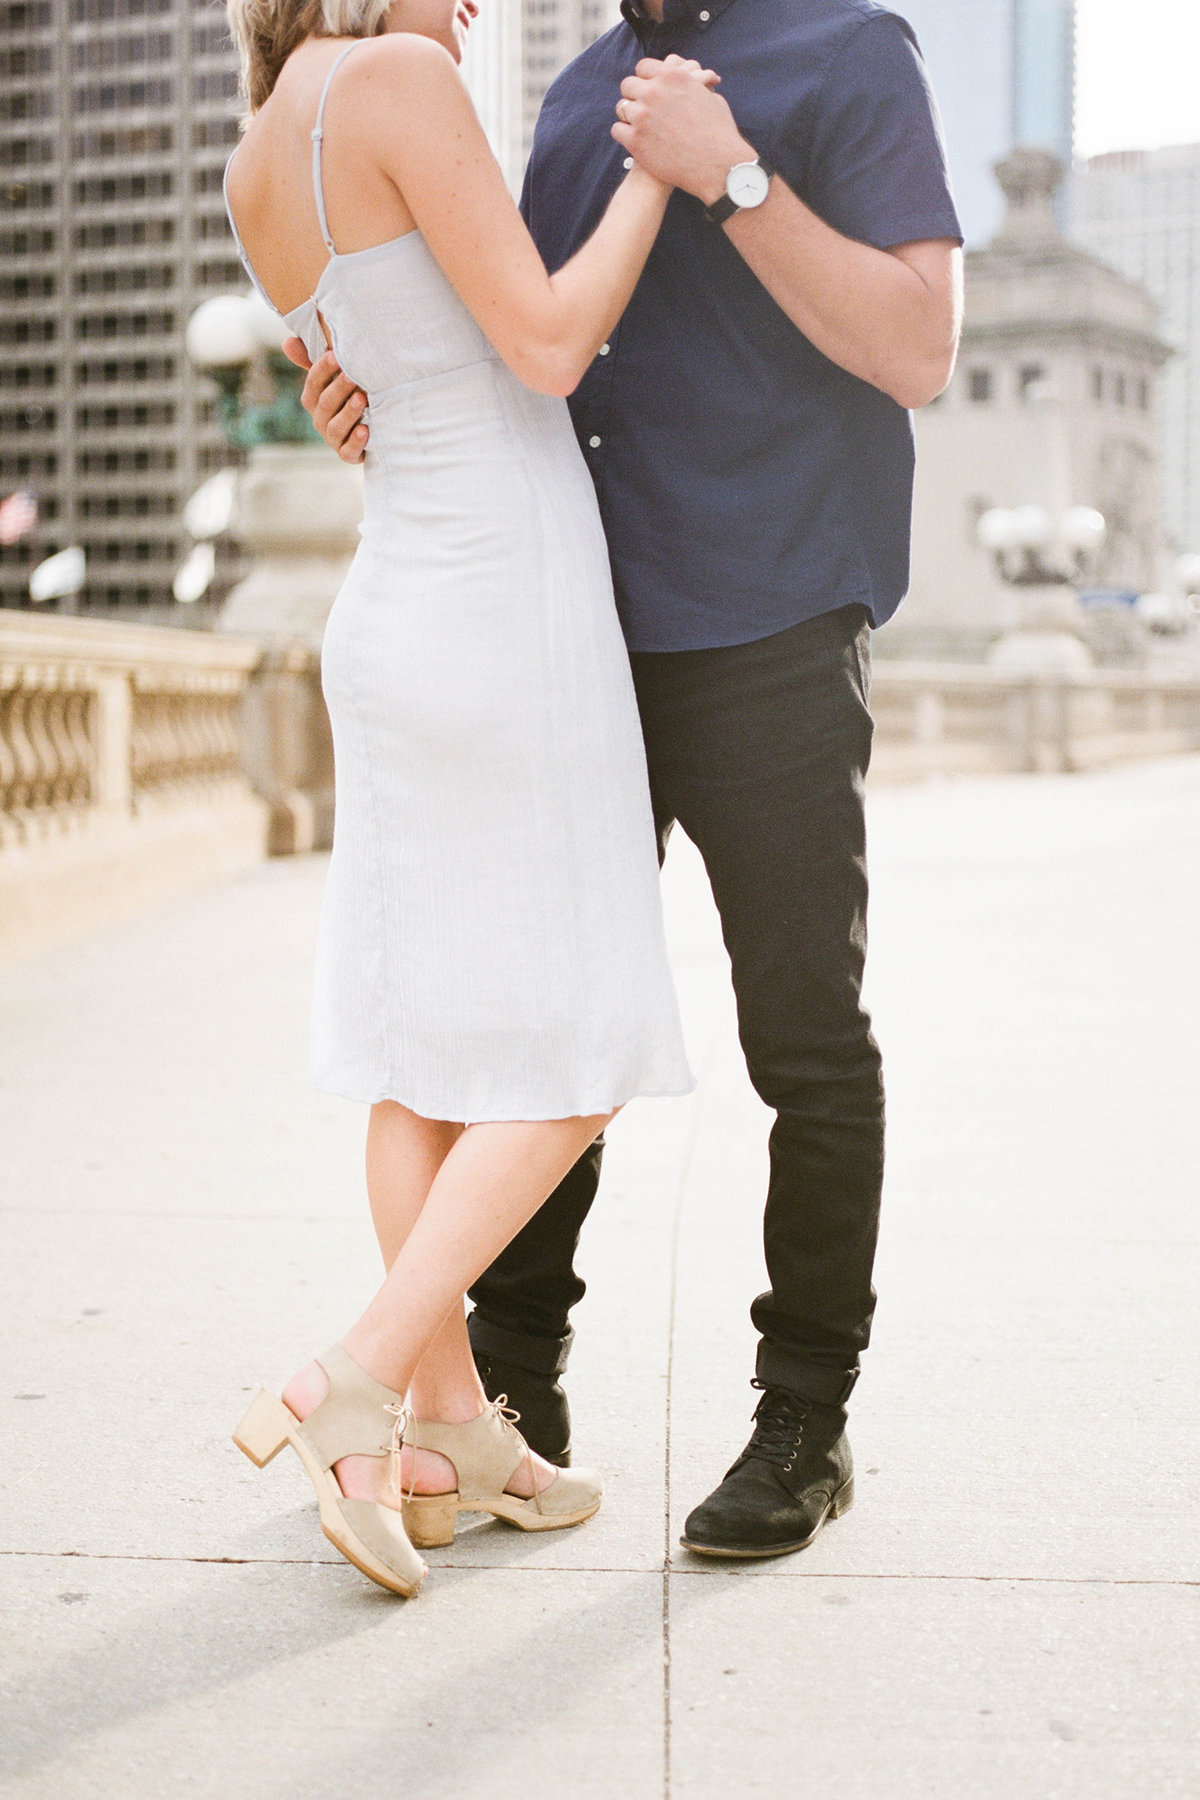 Chicago Wedding Photographer - Fine Art Film Photographer - Sarah Sunstrom - Sam + Morgan - Engagement Session - 10